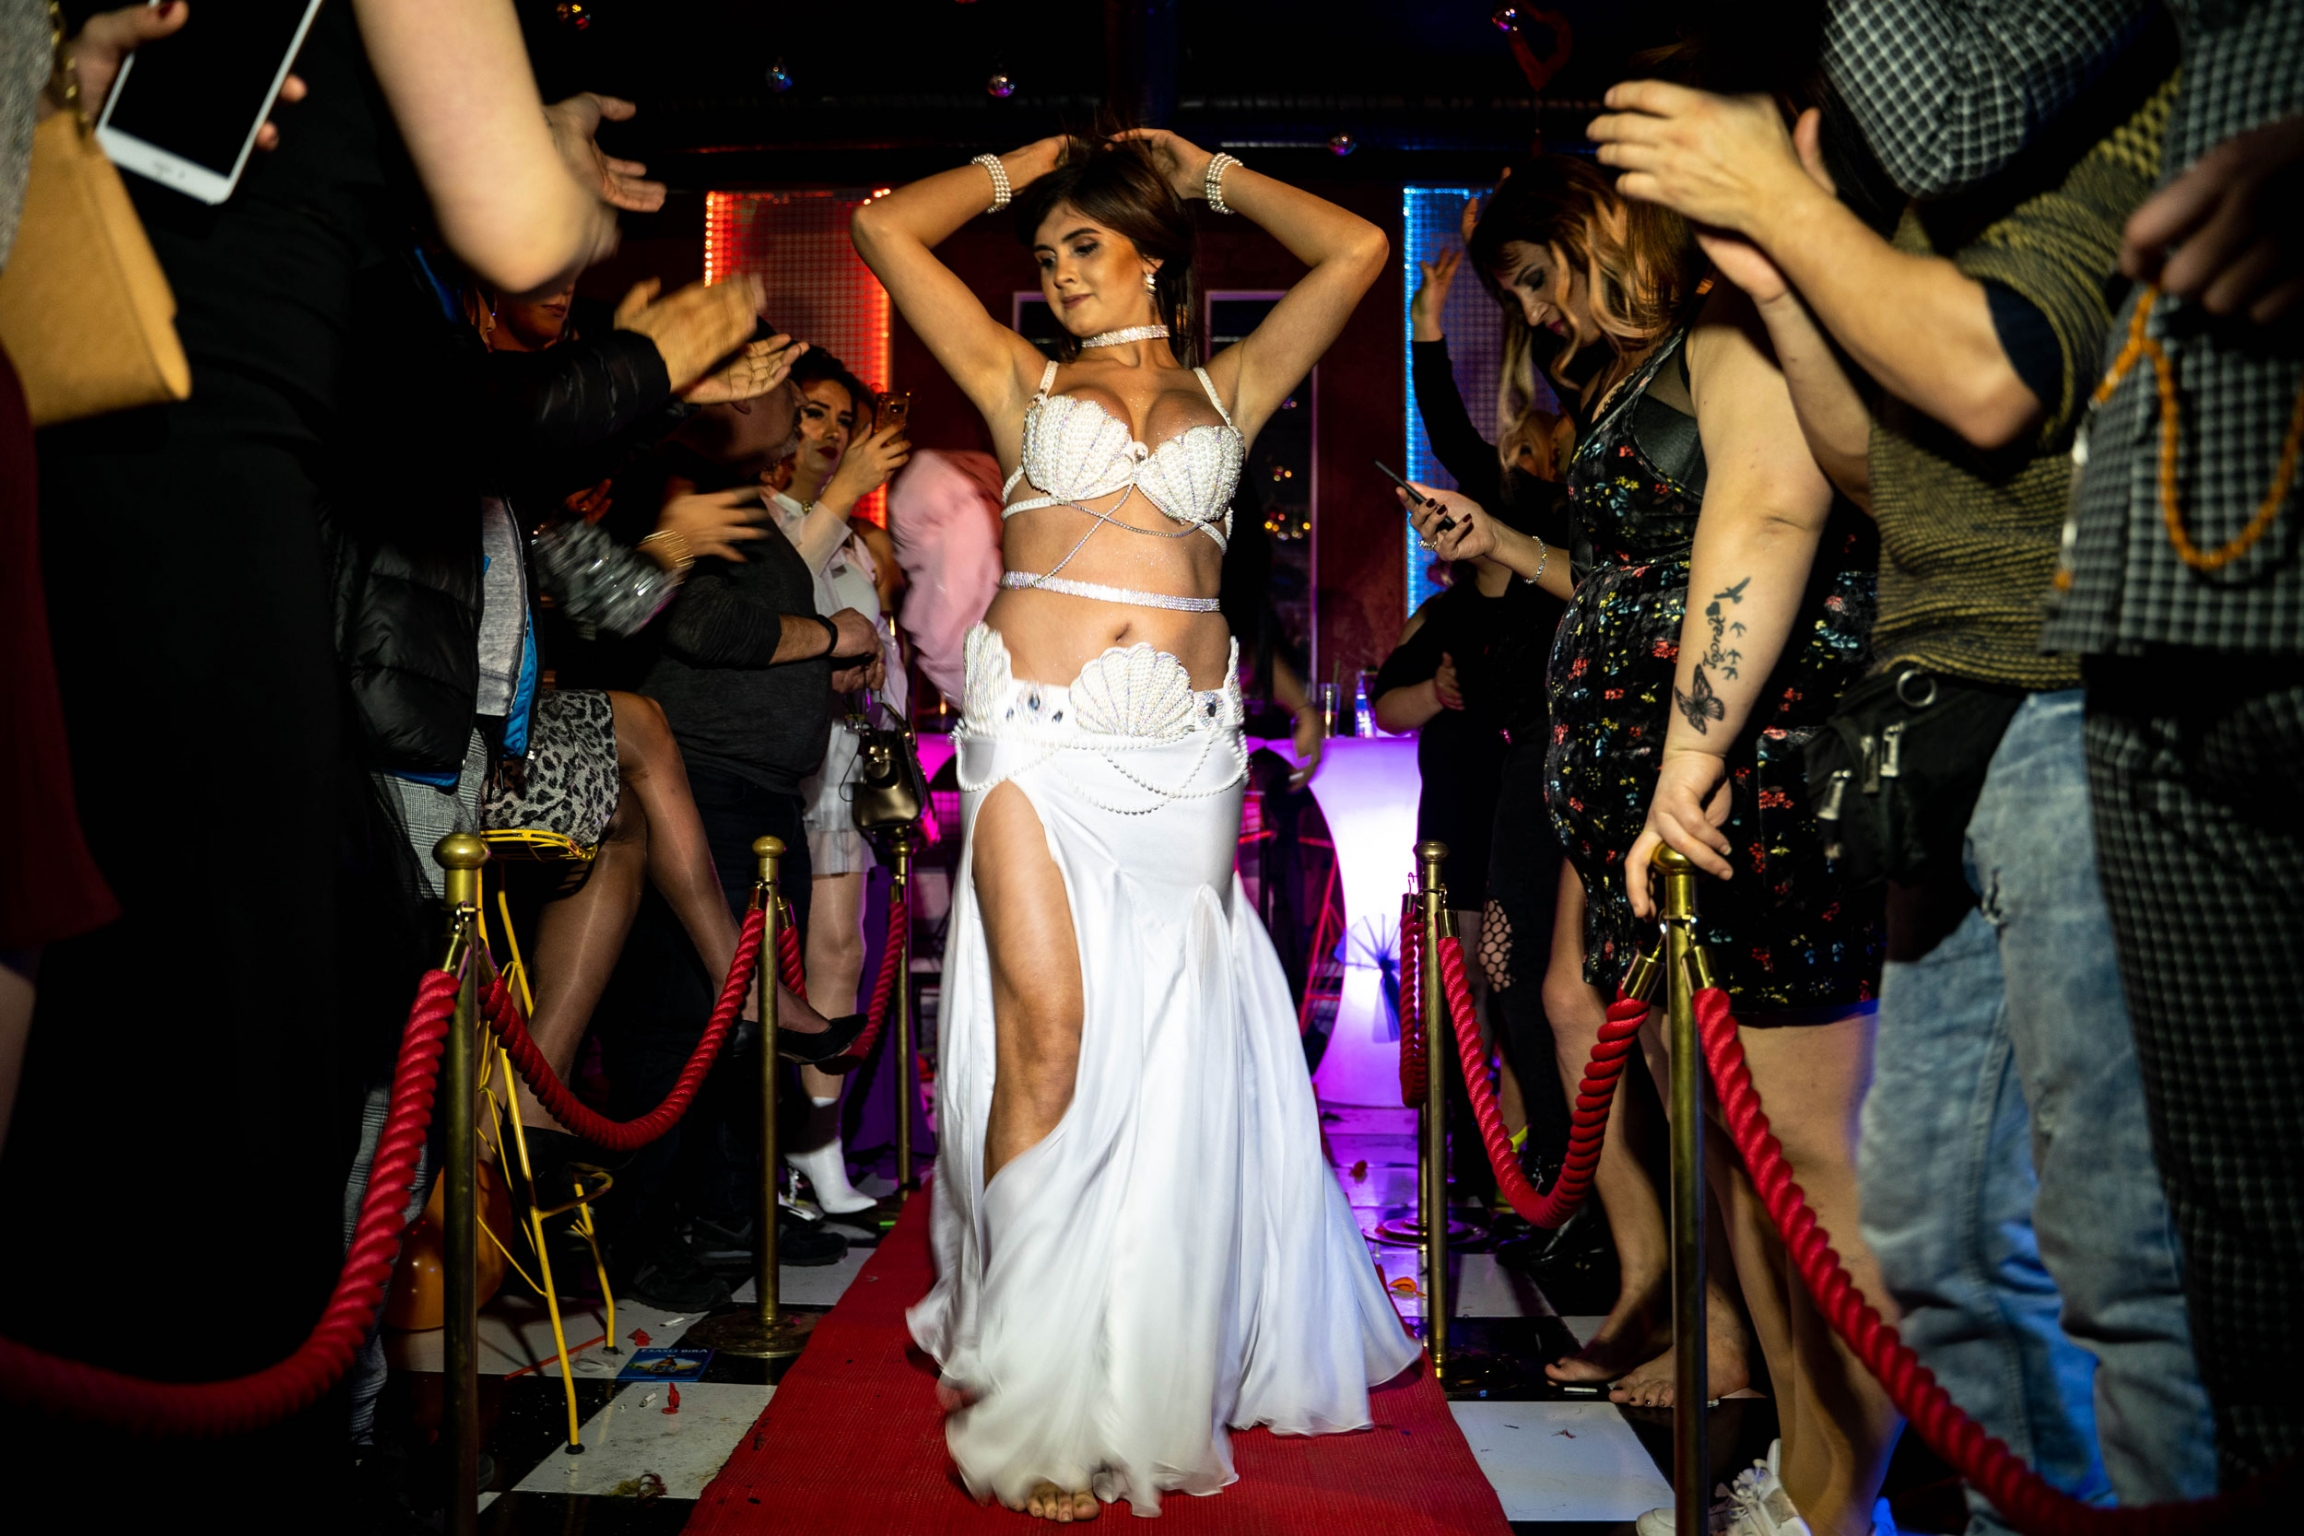 A transgender woman in shown wearing a white dress and baring her midriff.